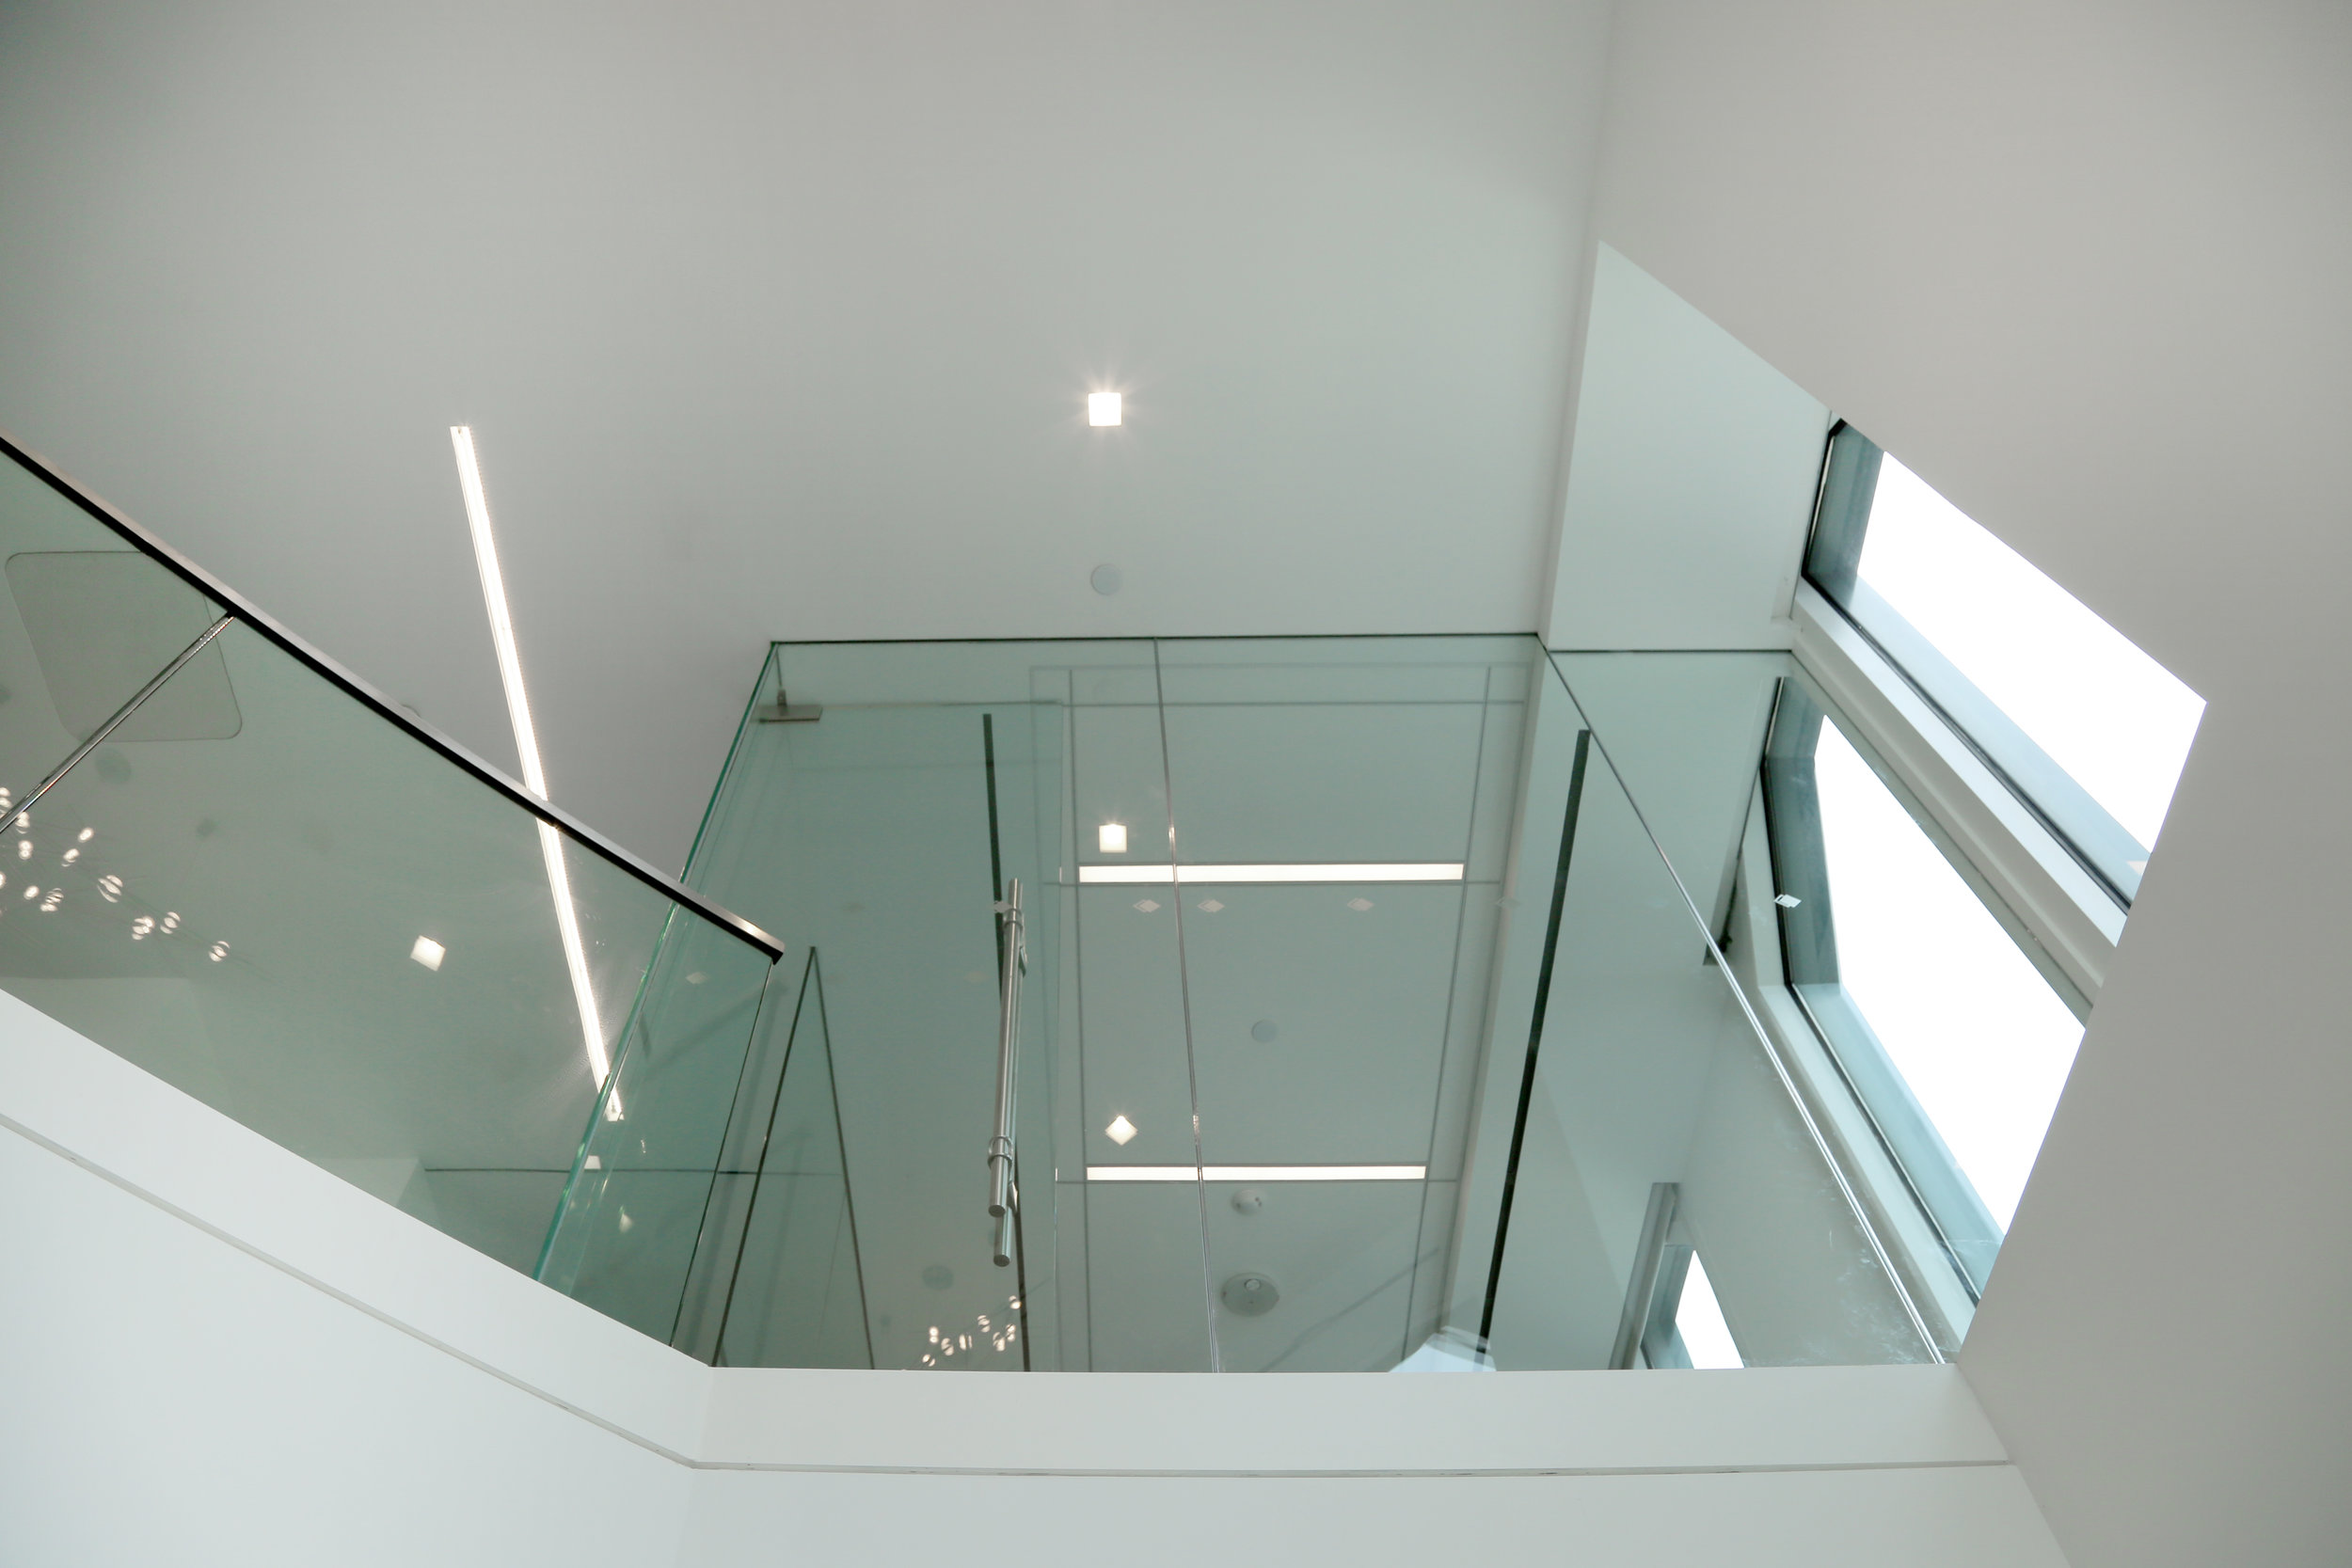 Floating Frameless Glass Office Wall Staircase Railing - Spaceworks AI.jpg